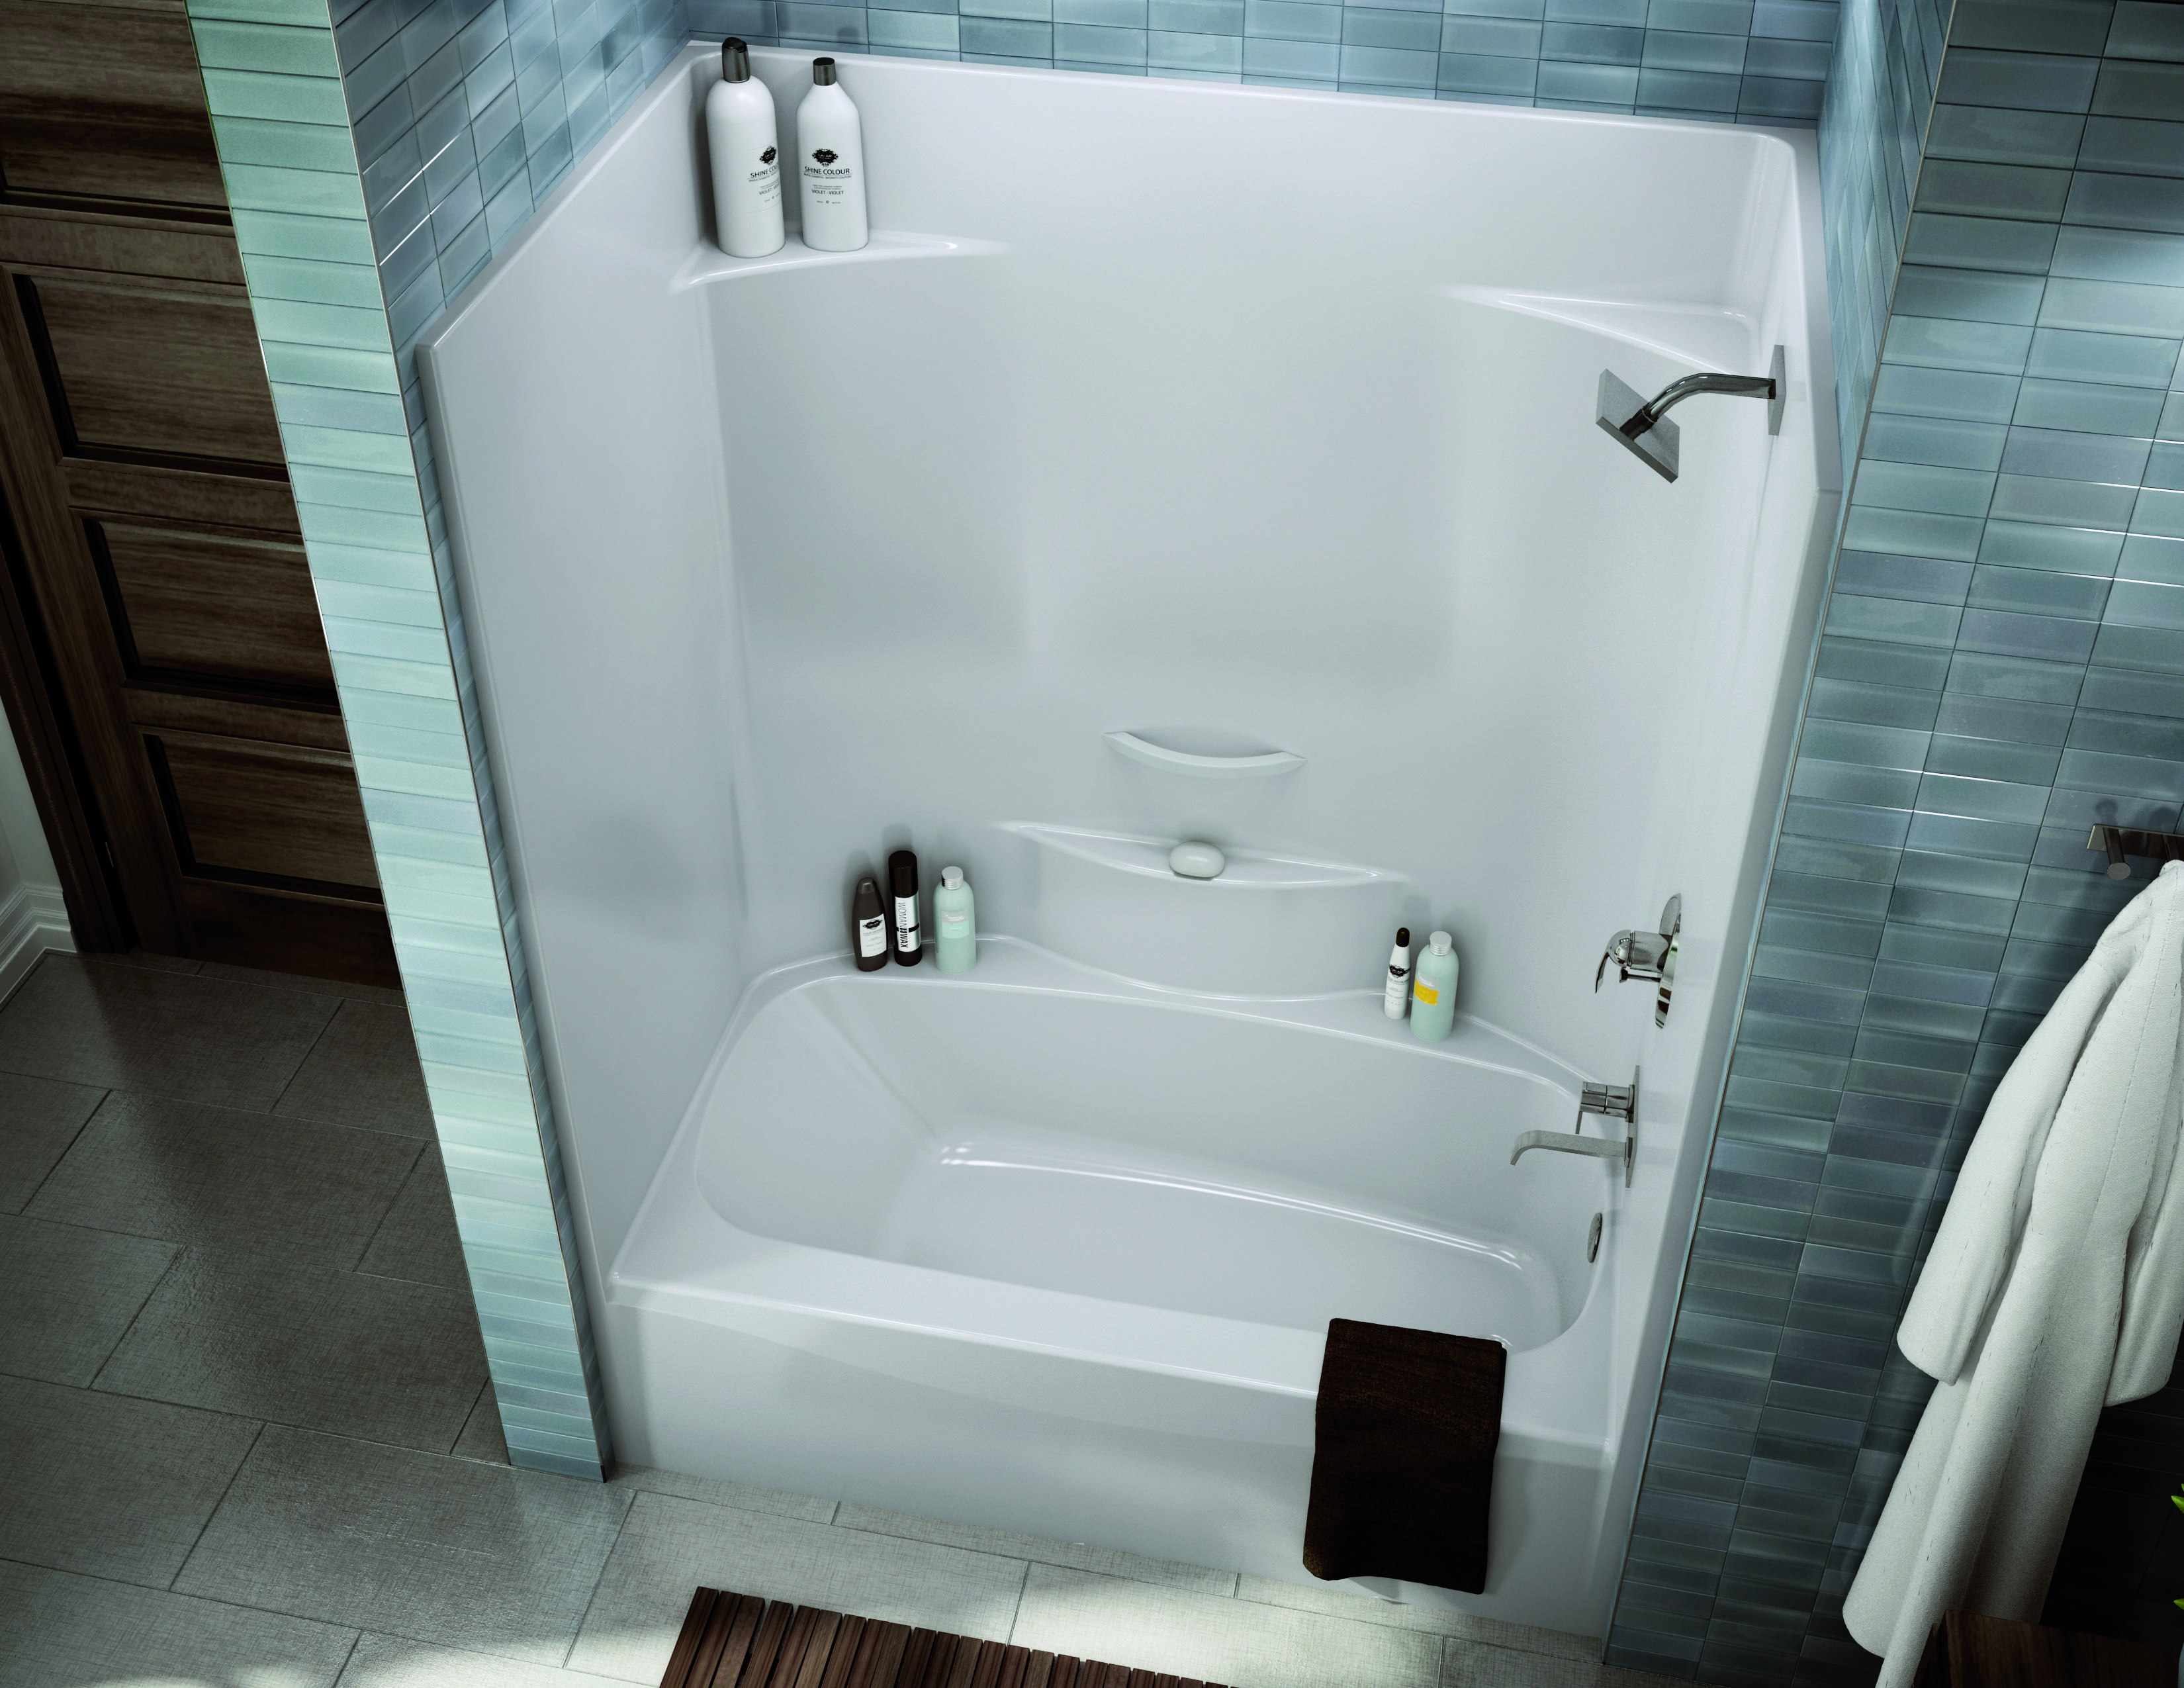 MAAX Tub Installation | TS-3660 Alcove or Tub showers bathtub - MAAX ...